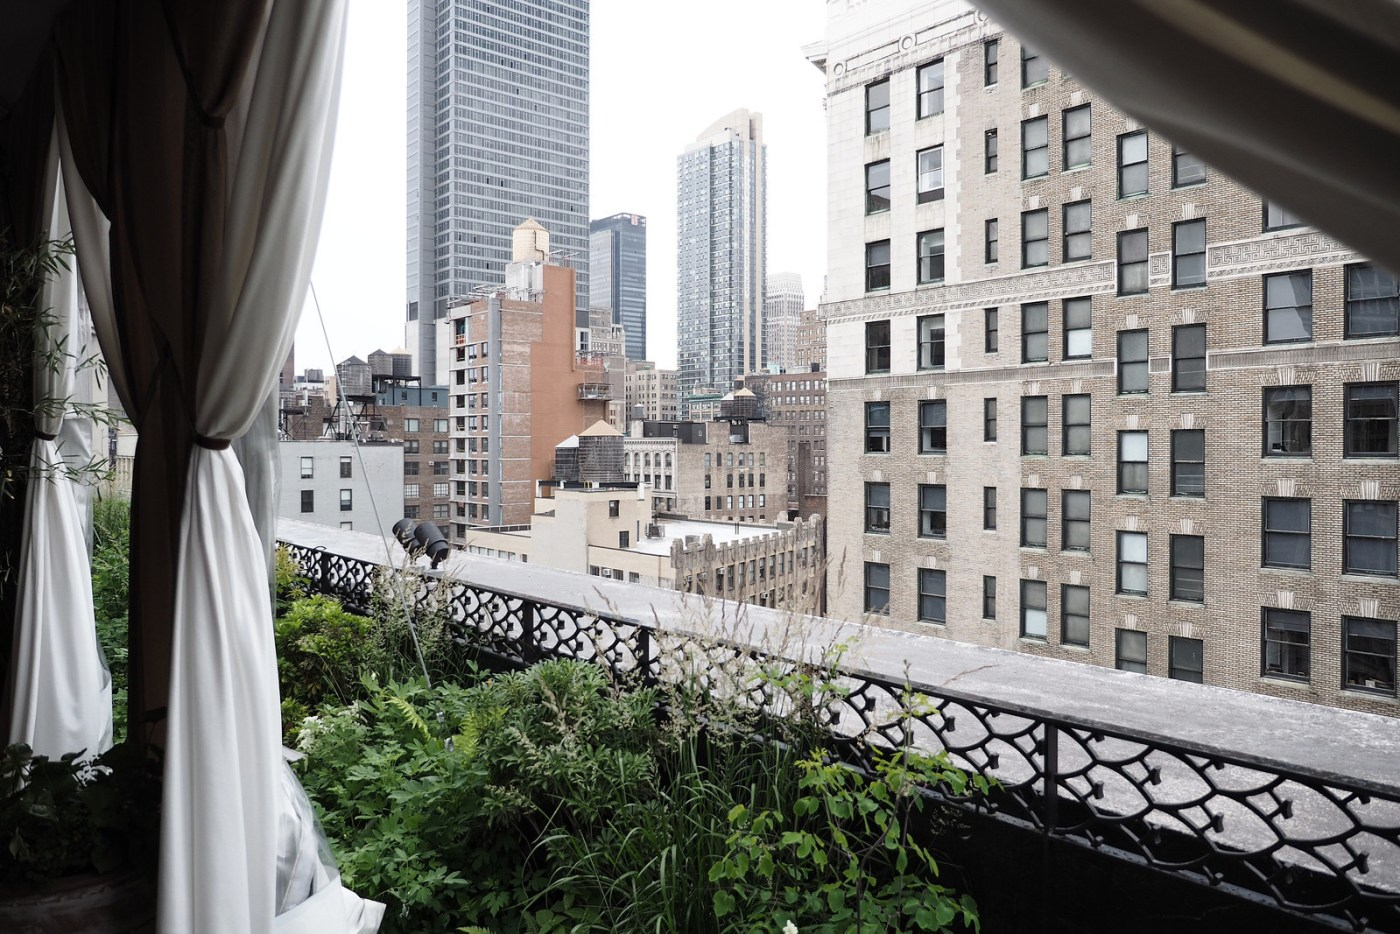 Nomad Hotel Rooftop